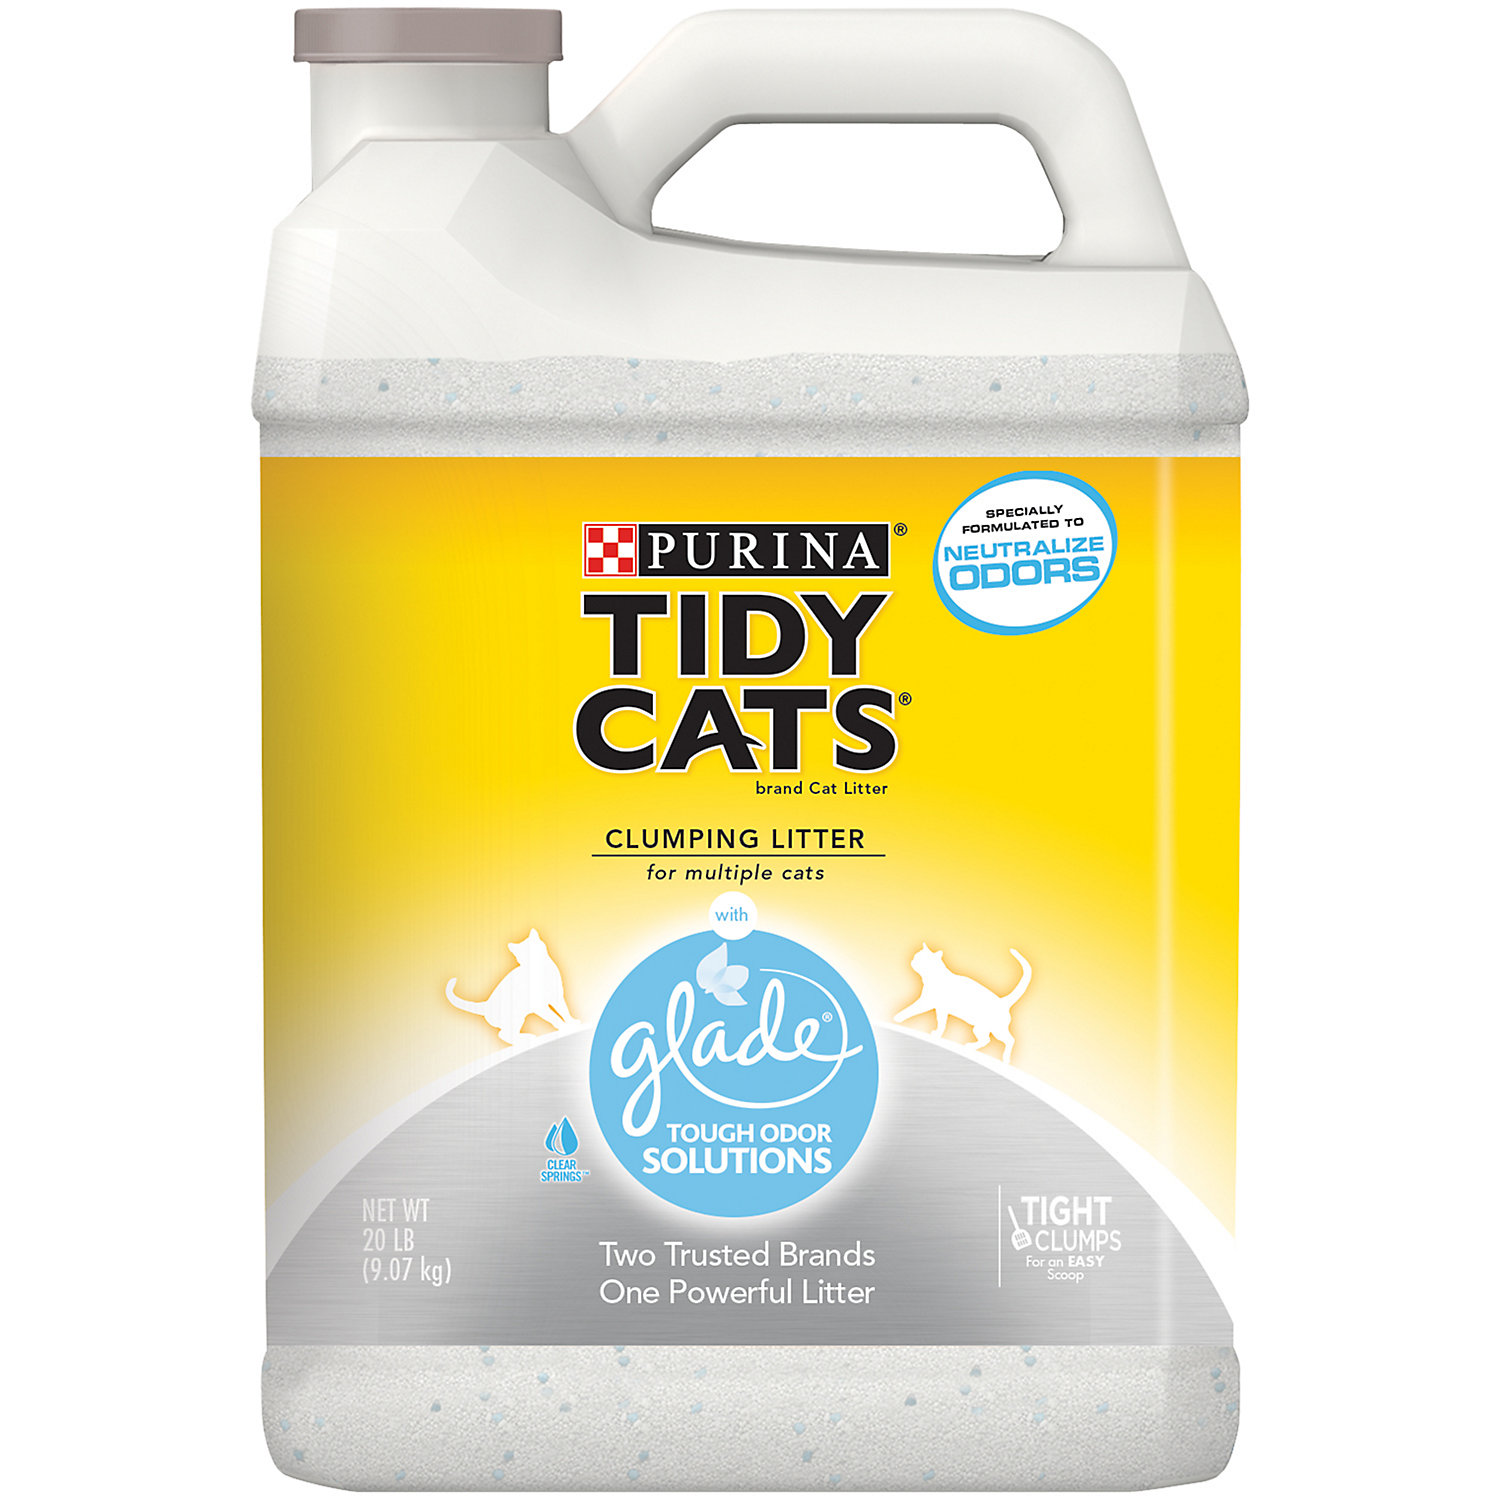 Purina Beyond Cat Food >> 070230153456 UPC - Tidy Cats Scoop Tidy Cats Scoop For Mulitple | UPC Lookup